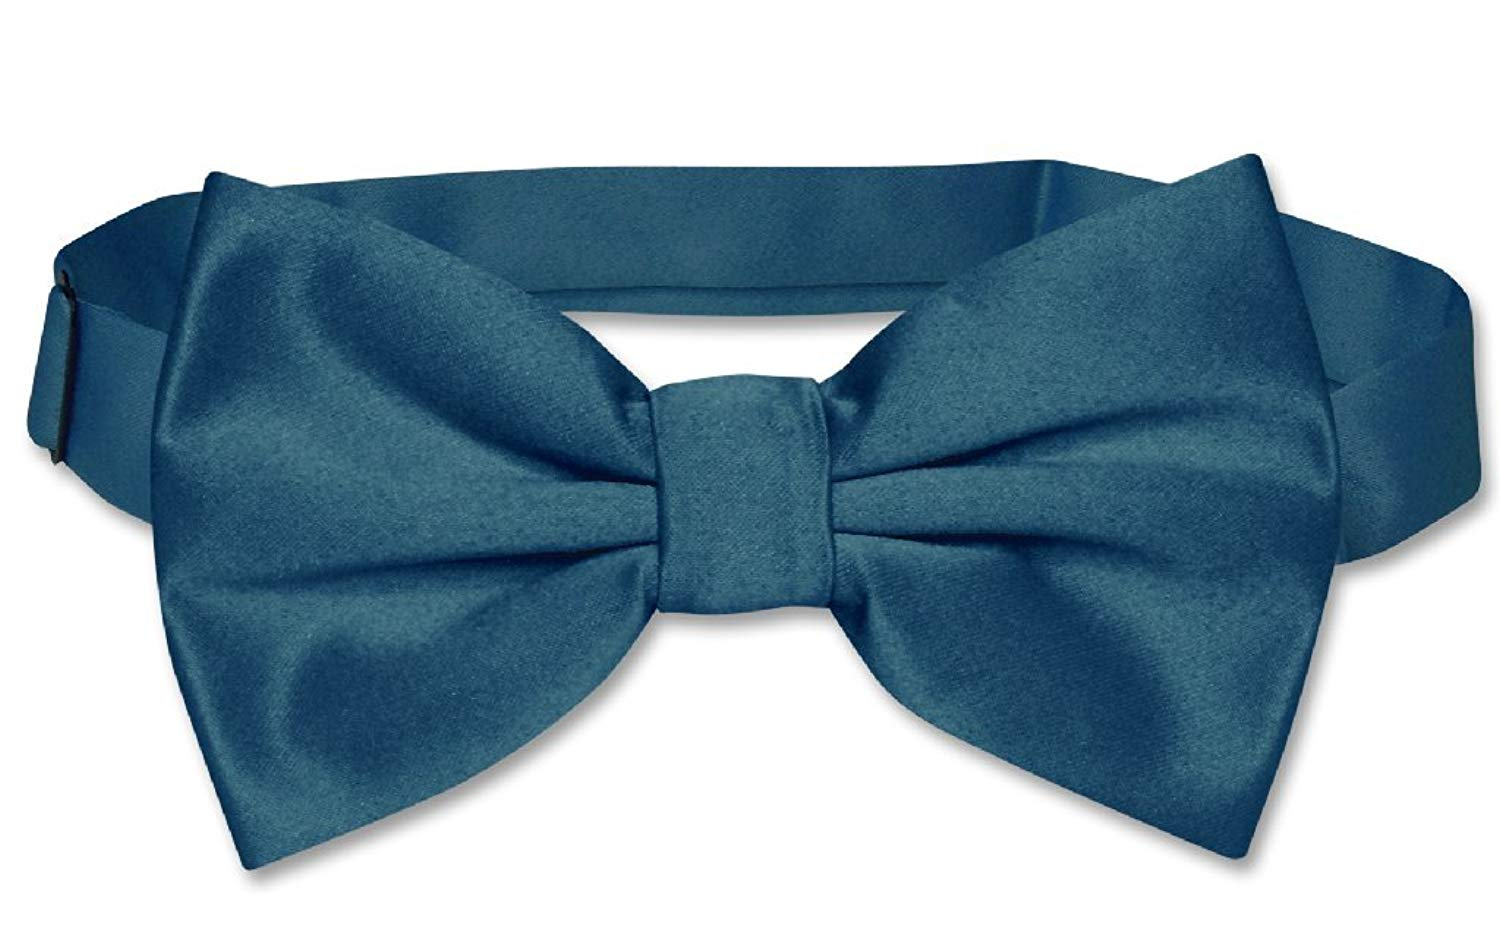 Vesuvio Napoli BOY/'S BOWTIE Solid NAVY BLUE Color Youth Bow Tie